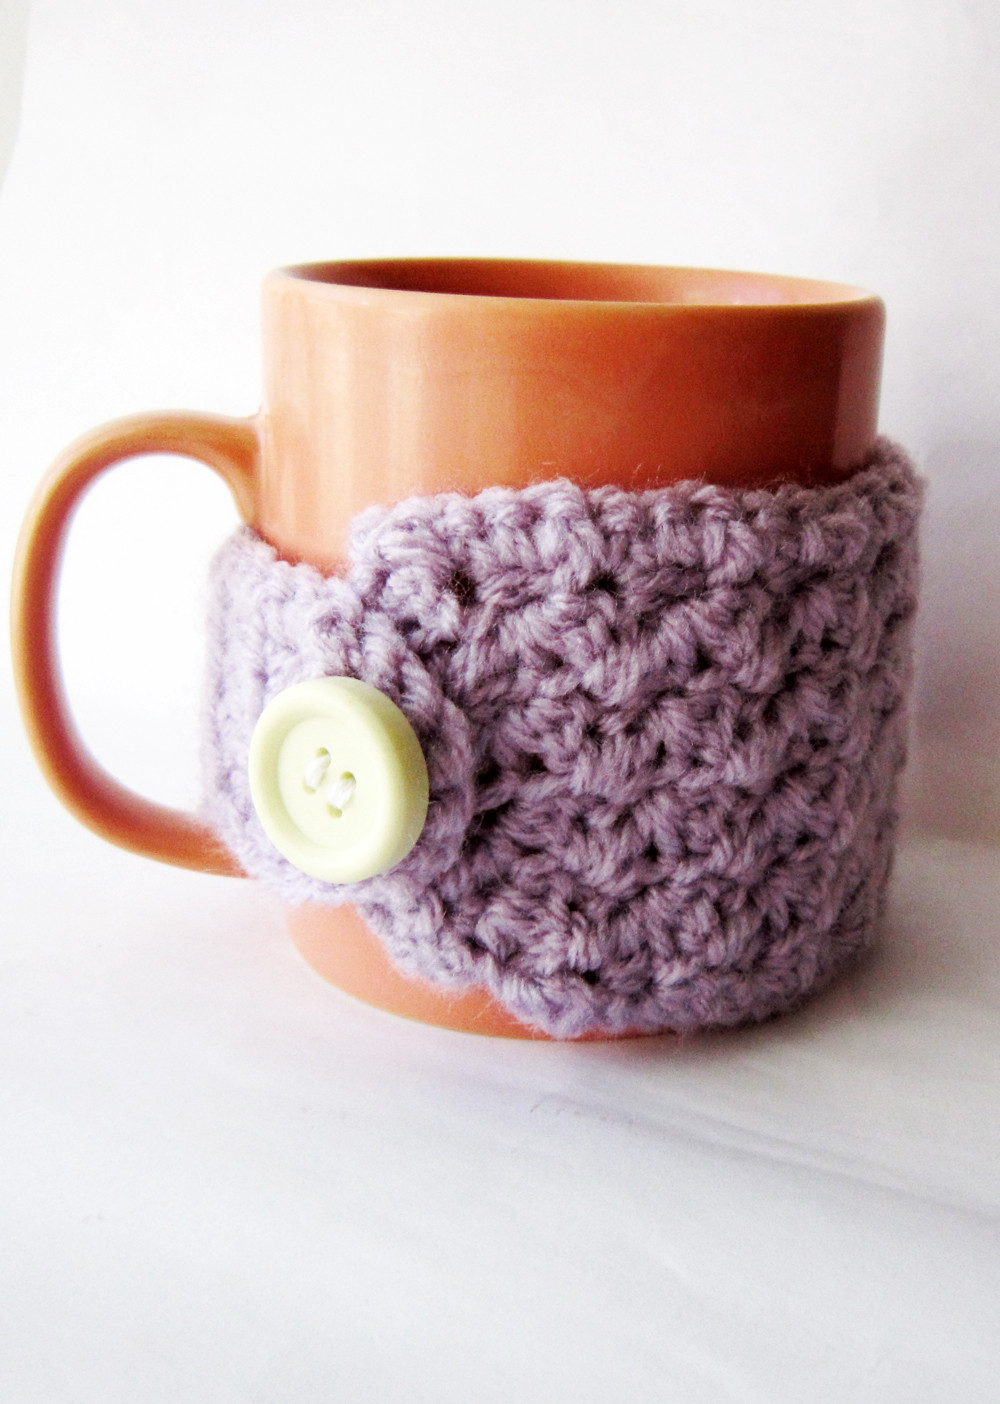 Crochet Coffee Cup Cozy Inspirational Easy Crochet Mug Cozy Free Pattern Akamatra Of Crochet Coffee Cup Cozy Inspirational Crochet Class Beginning Crochet Sparkleez Crystles